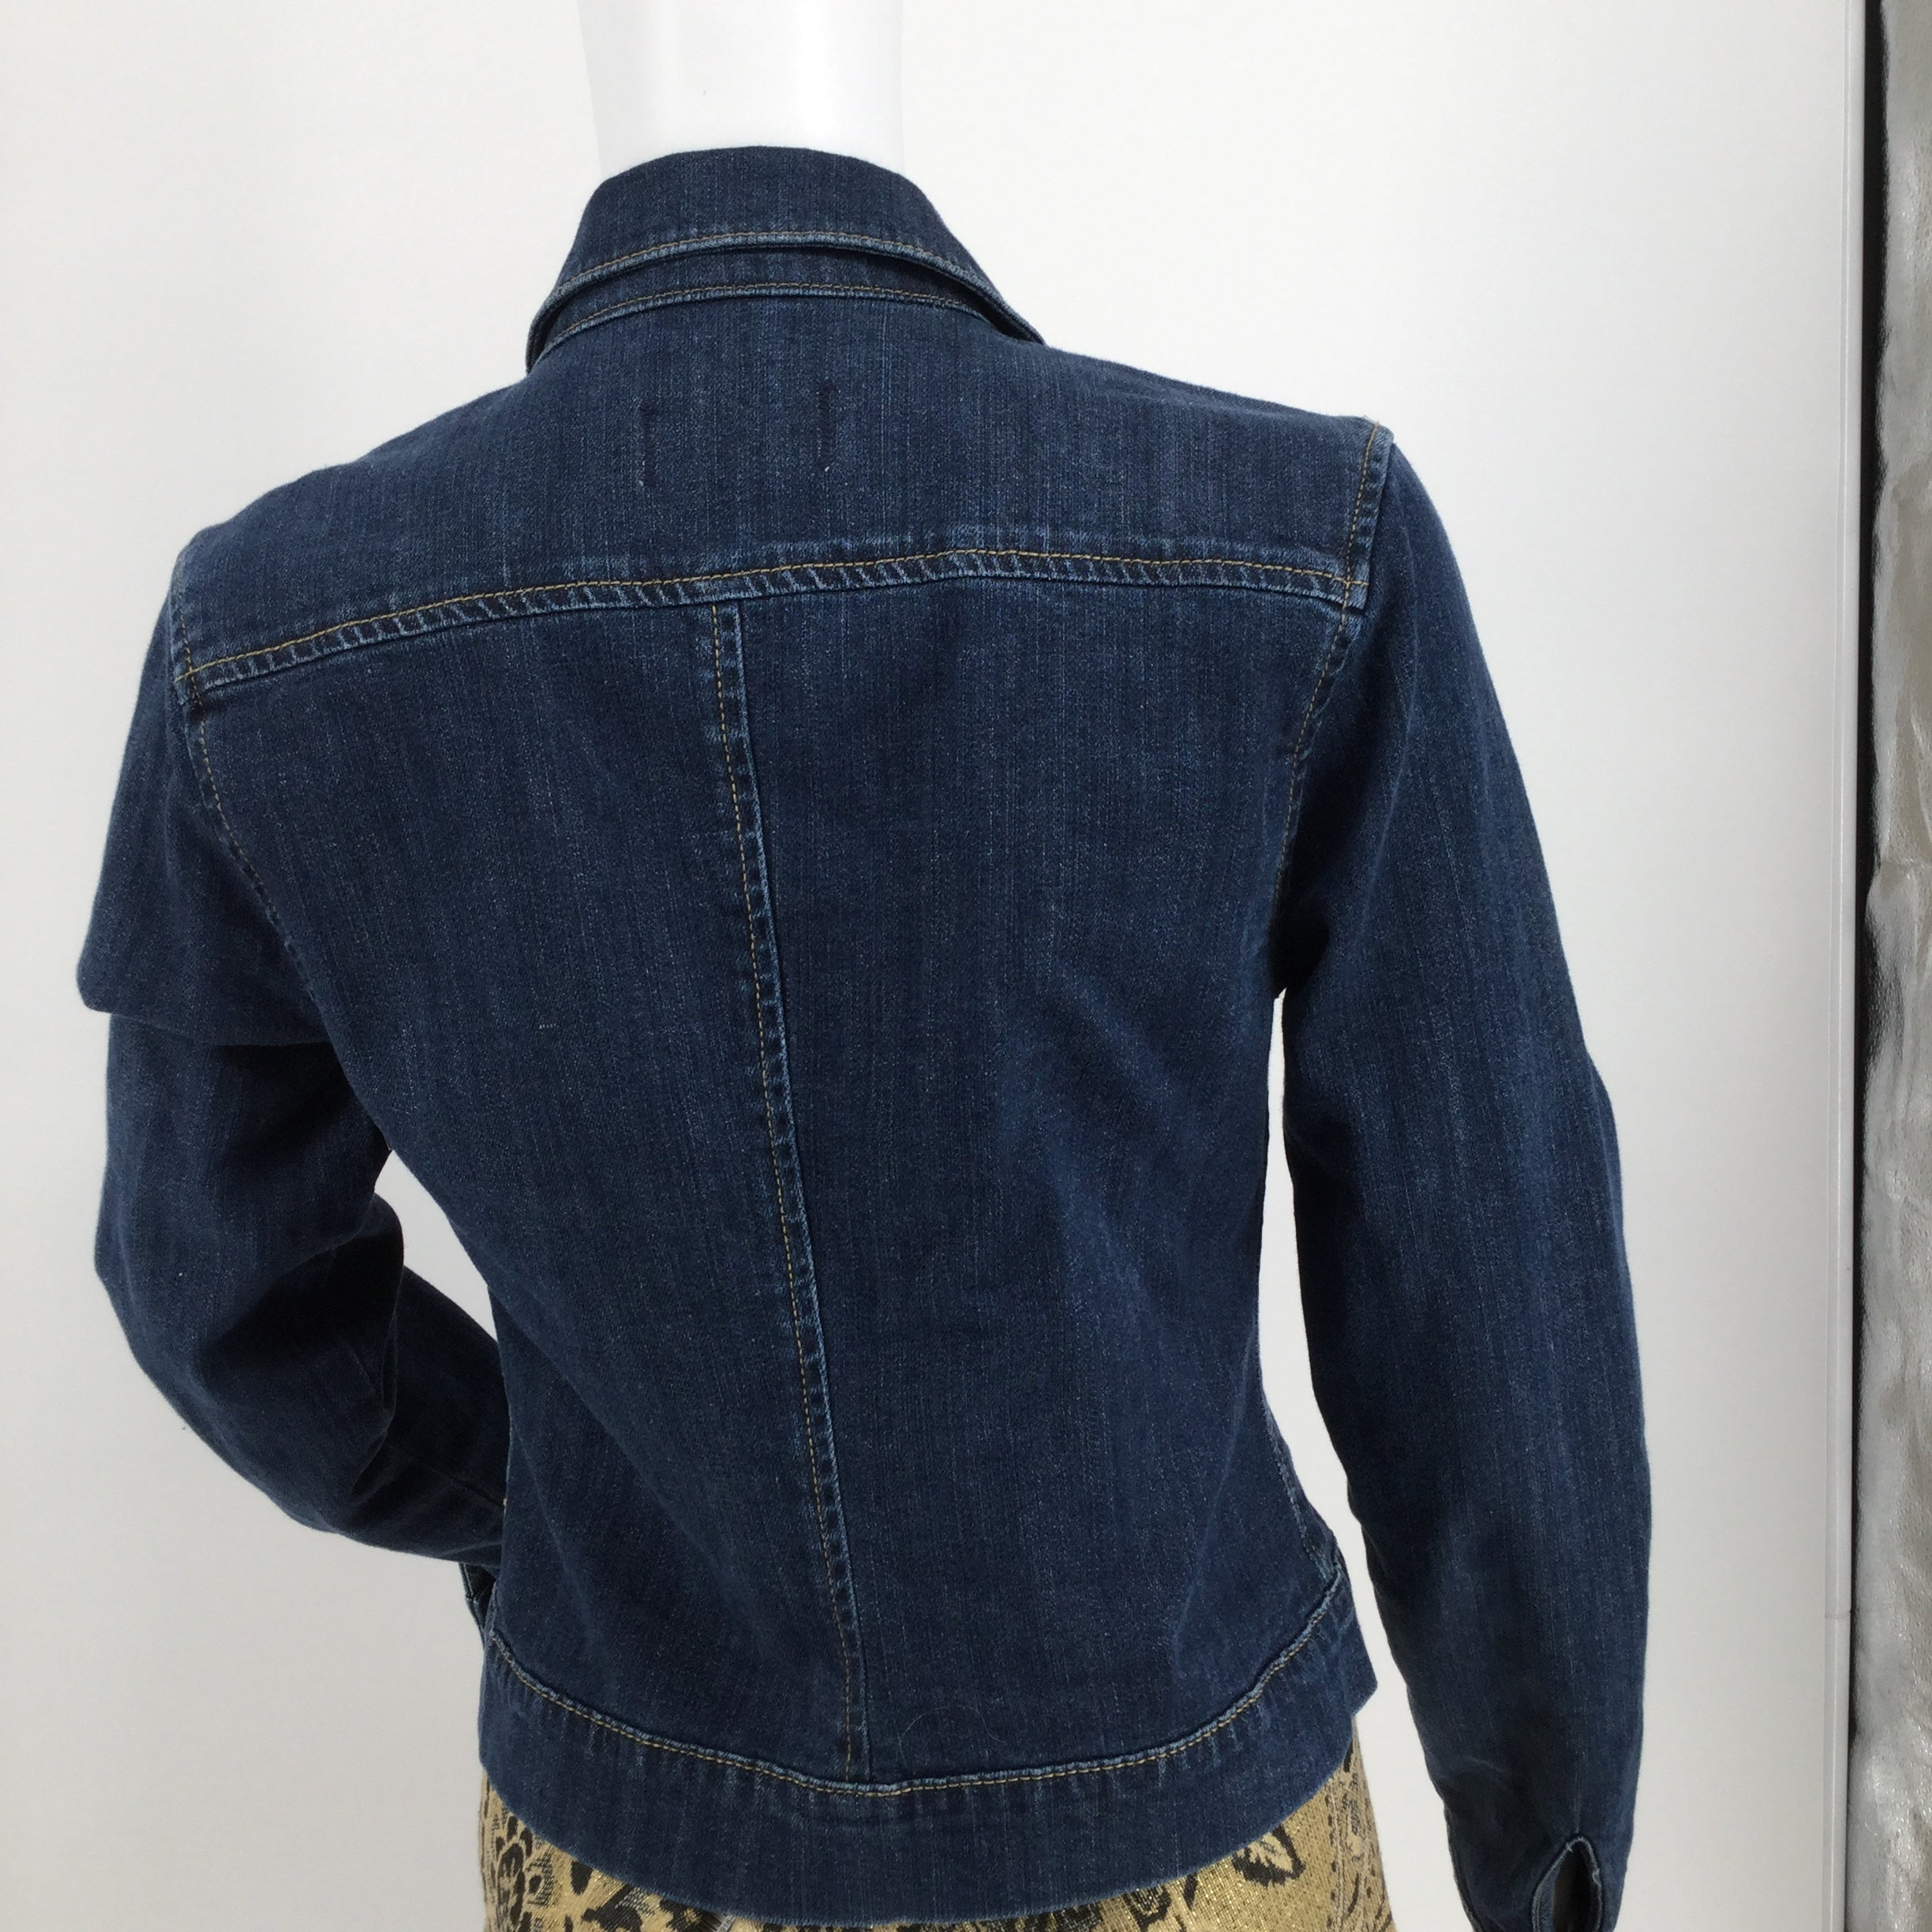 APPAREL,OUTERWEAR - DENIM JACKET WITH SILVER HARDWARE SIX BUTTON CLOSURES TWO POCKETS ON FRONT *SKIRT NOT INCLUDED